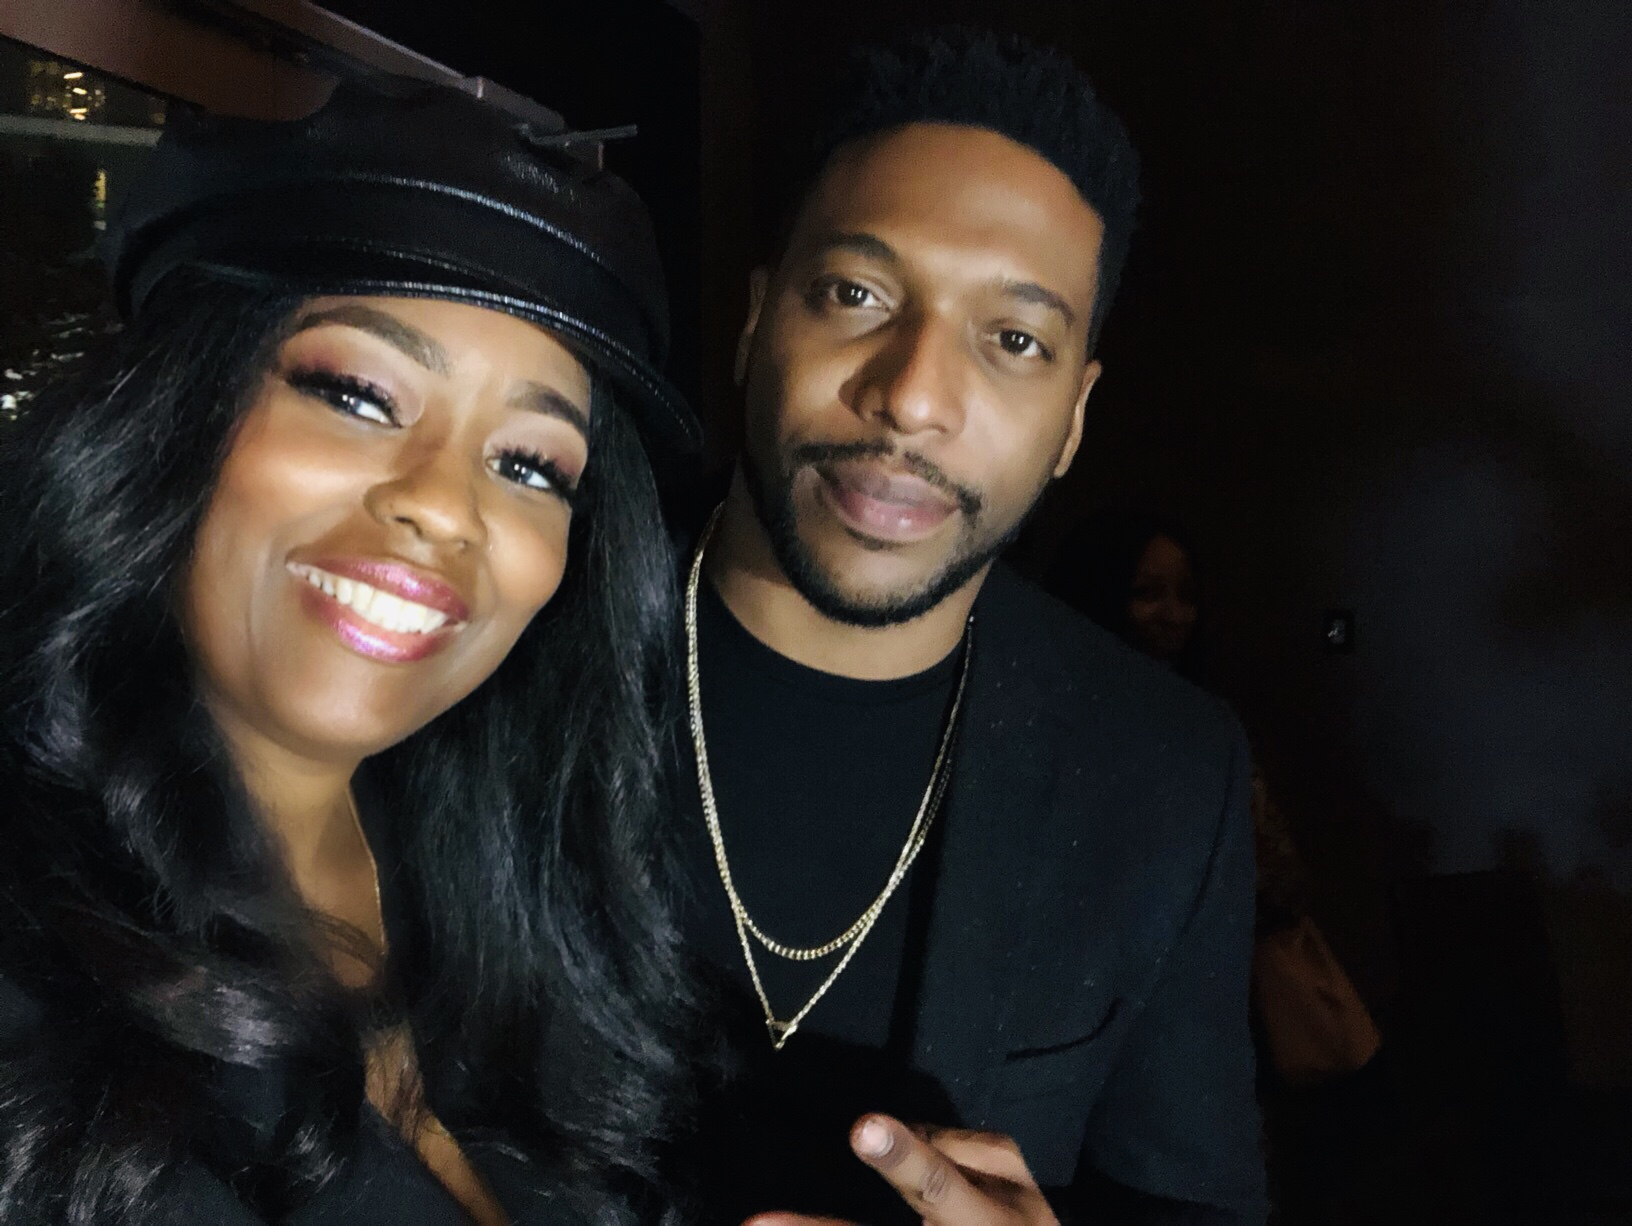 Dinner And A Conversation With Actor Jocko Sims From NBC's New Amsterdam